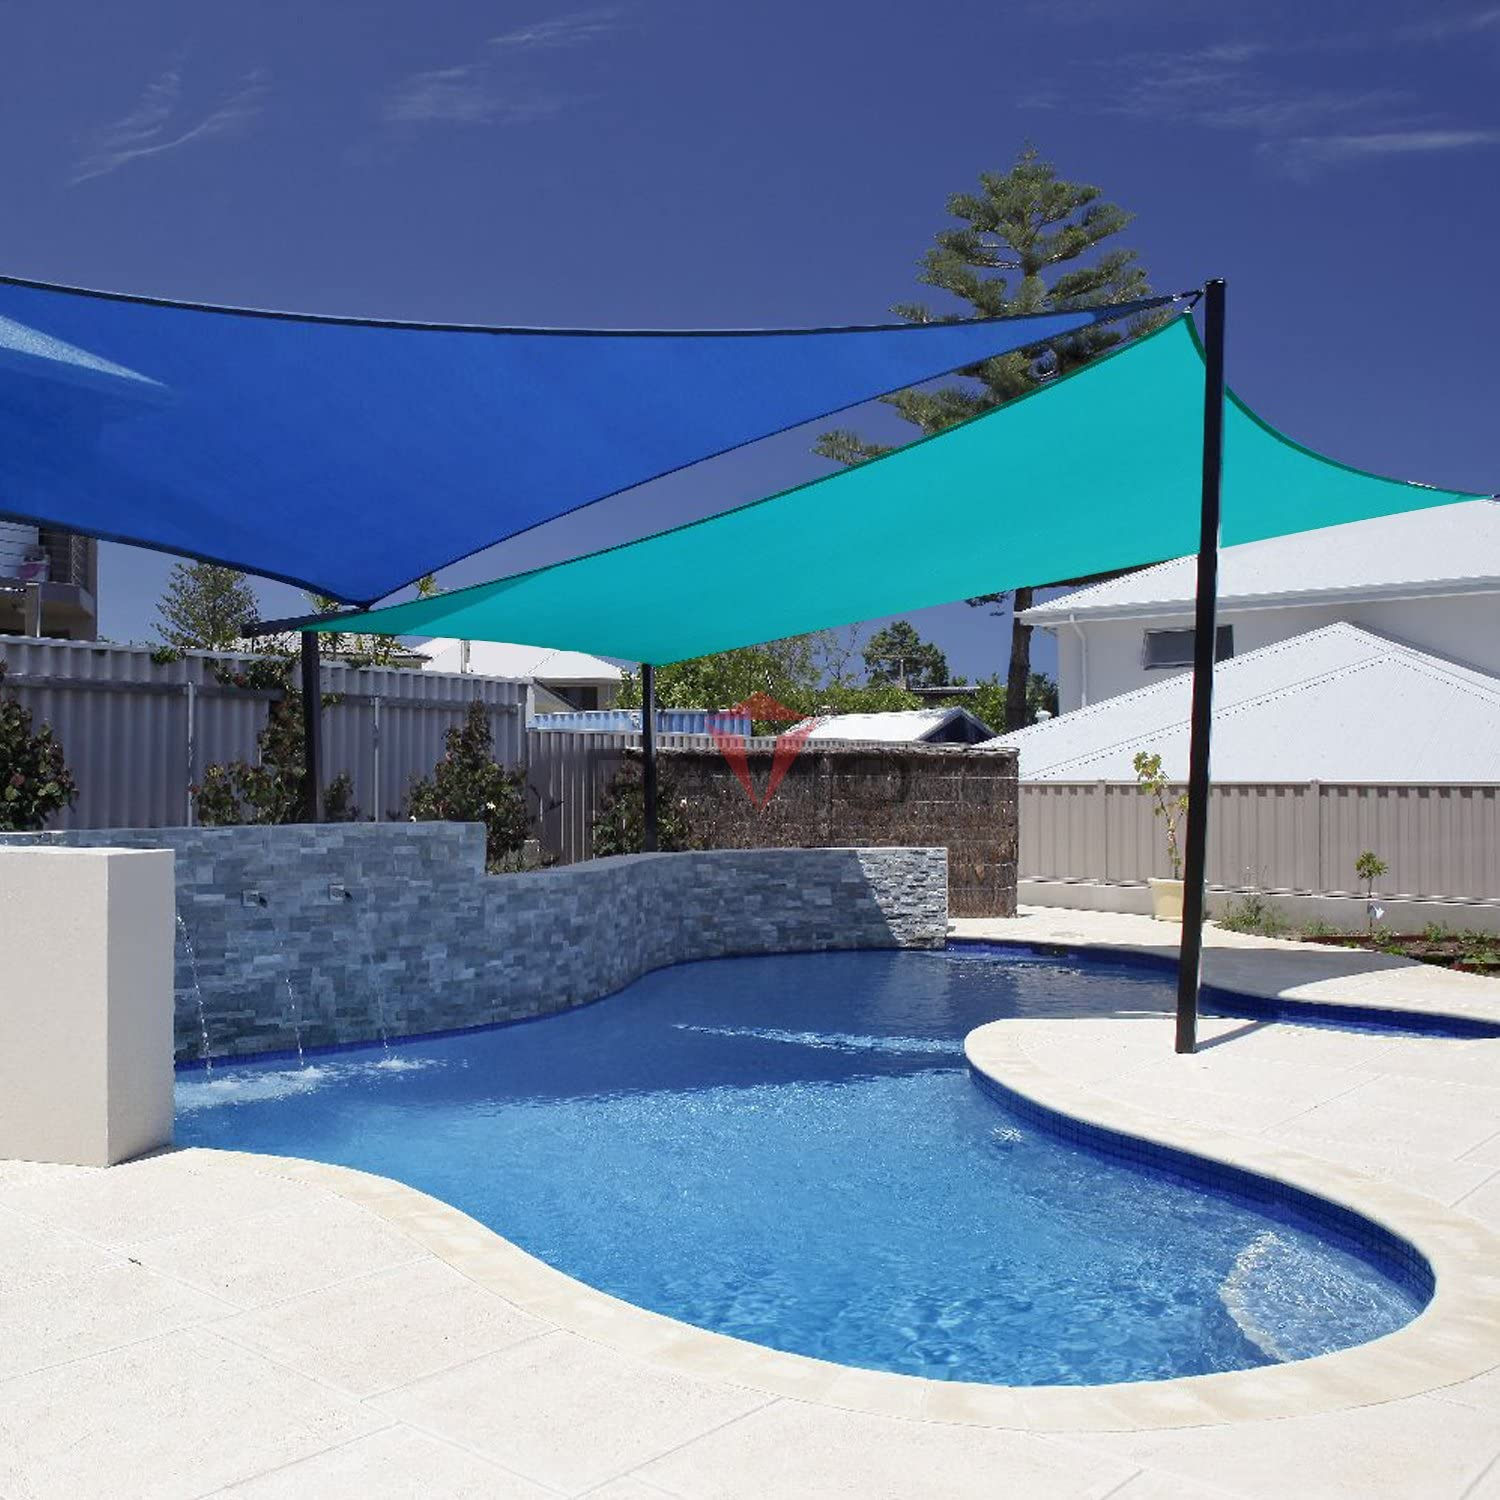 Patio Paradise 10' x 15' Solid Turquoise Green Sun Shade Sail Rectangle Square Canopy - Permeable UV Block Fabric Durable Outdoor - Customized Available